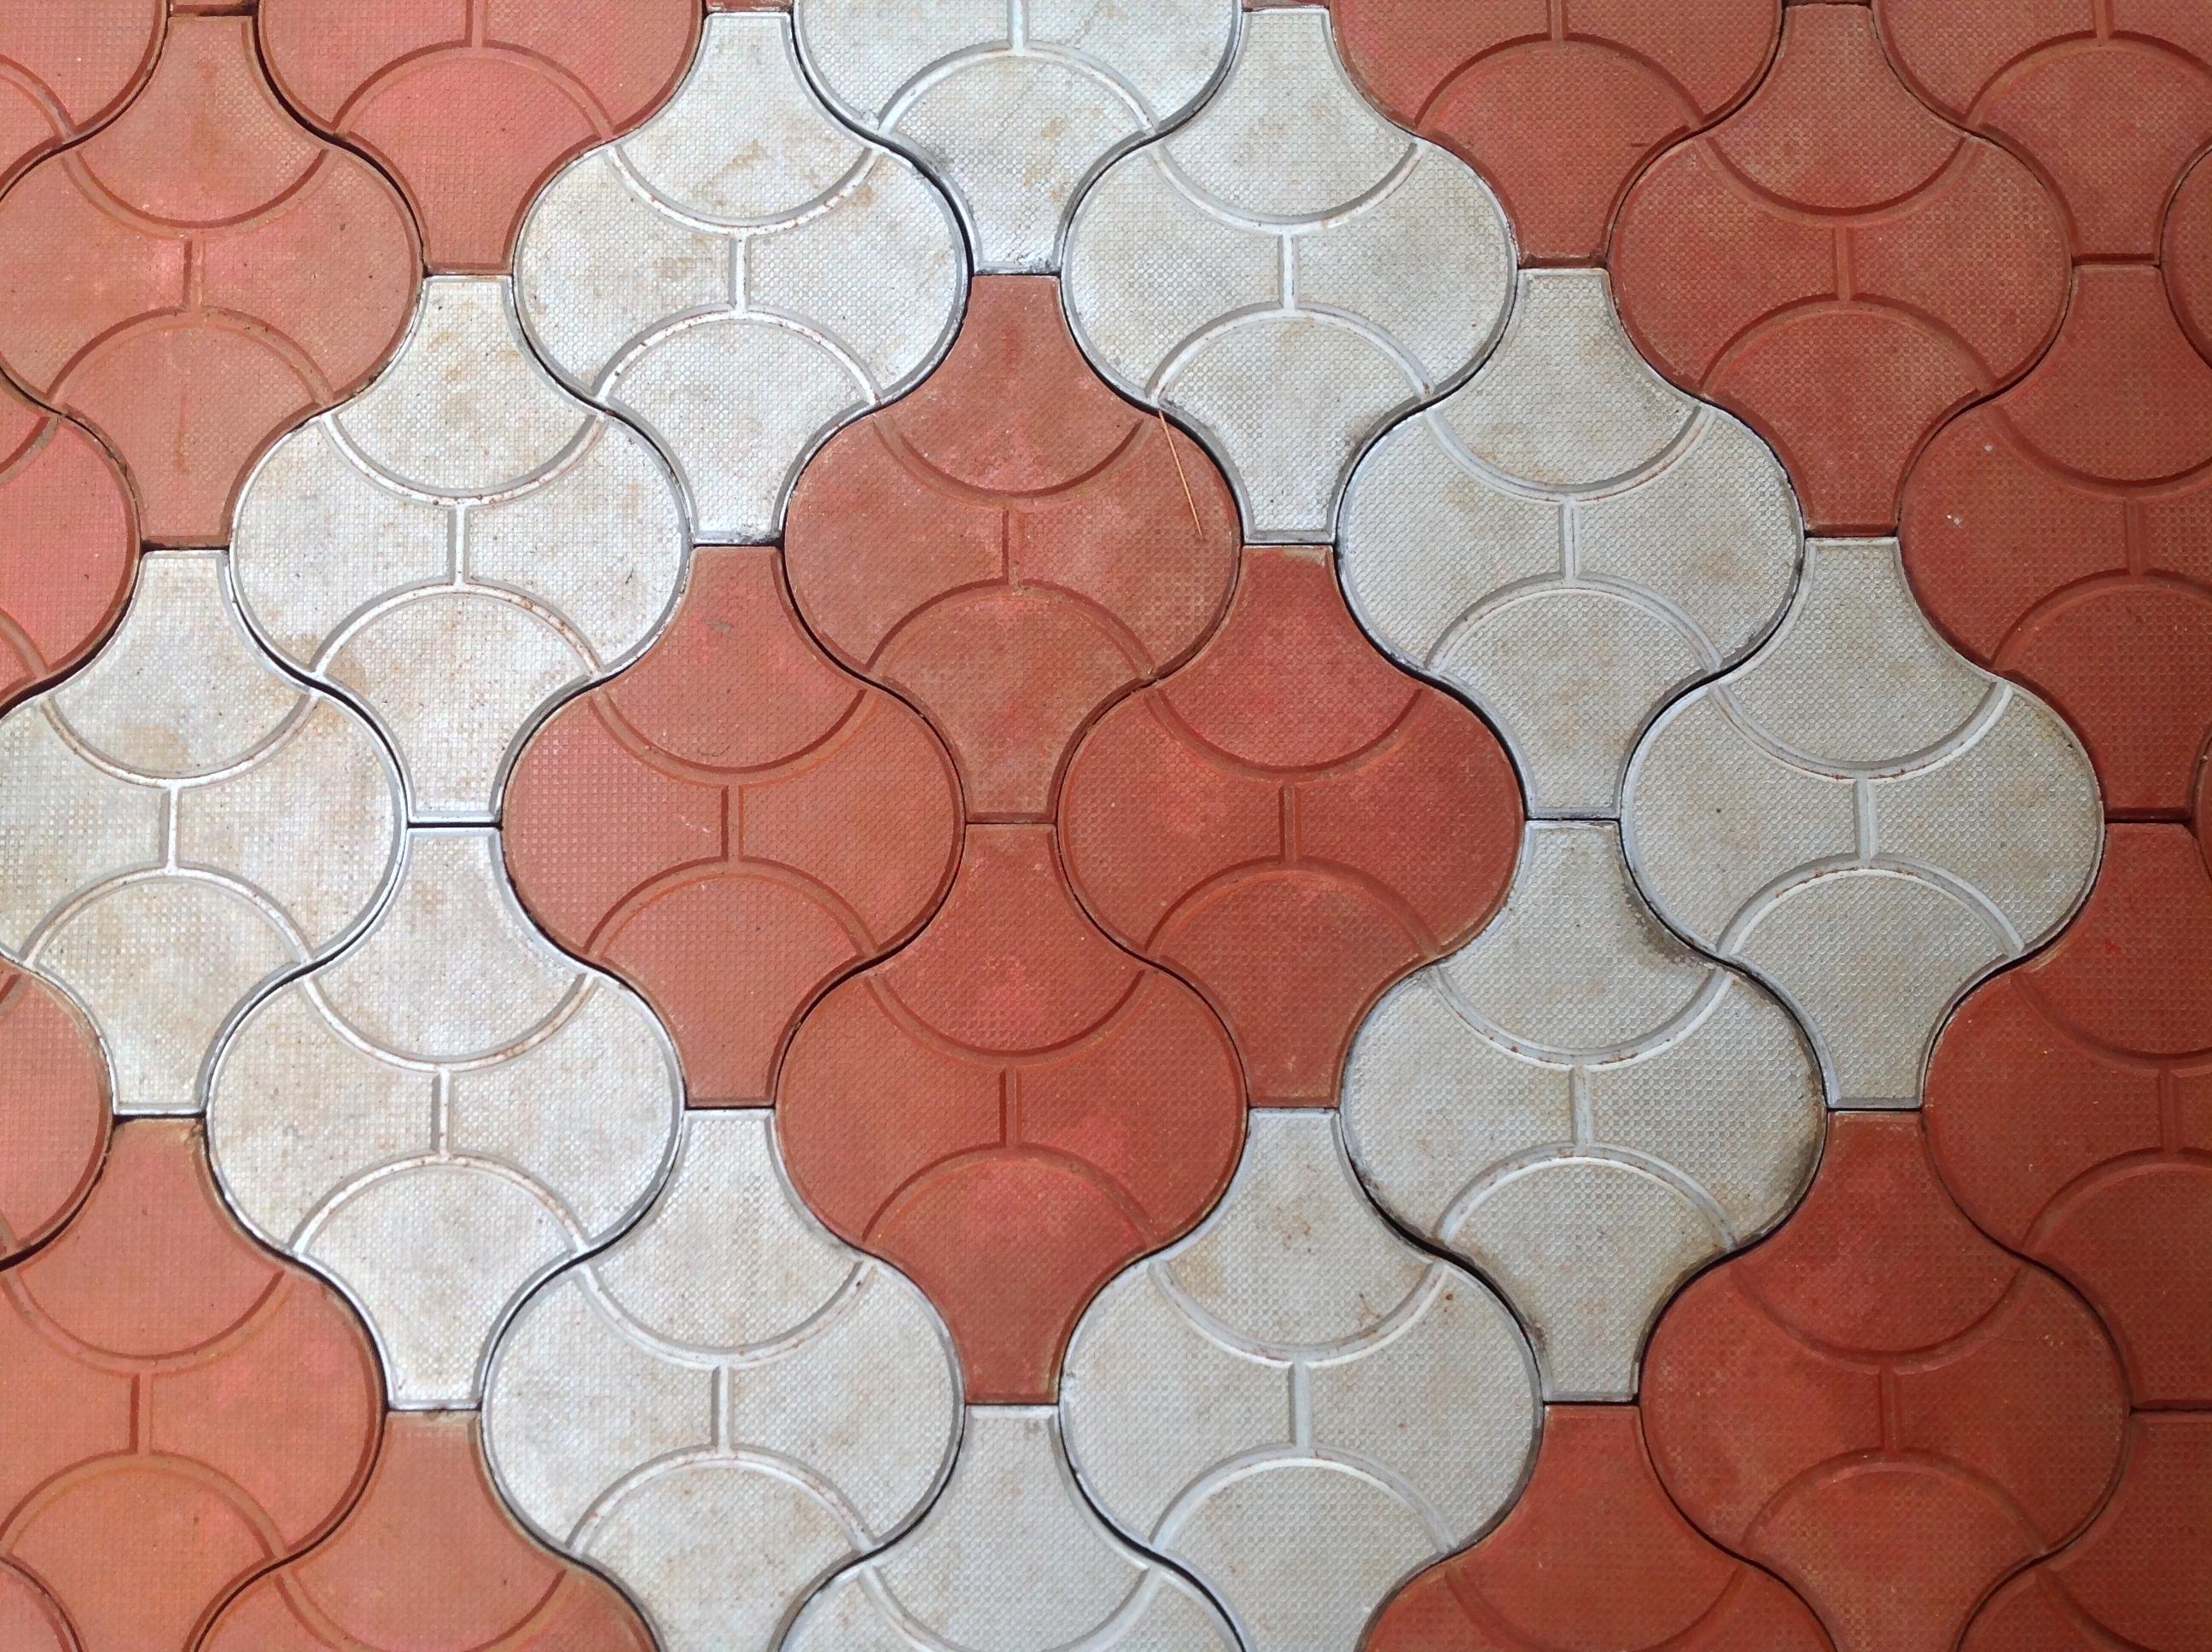 File:Interlocked Cement Floor Tiles